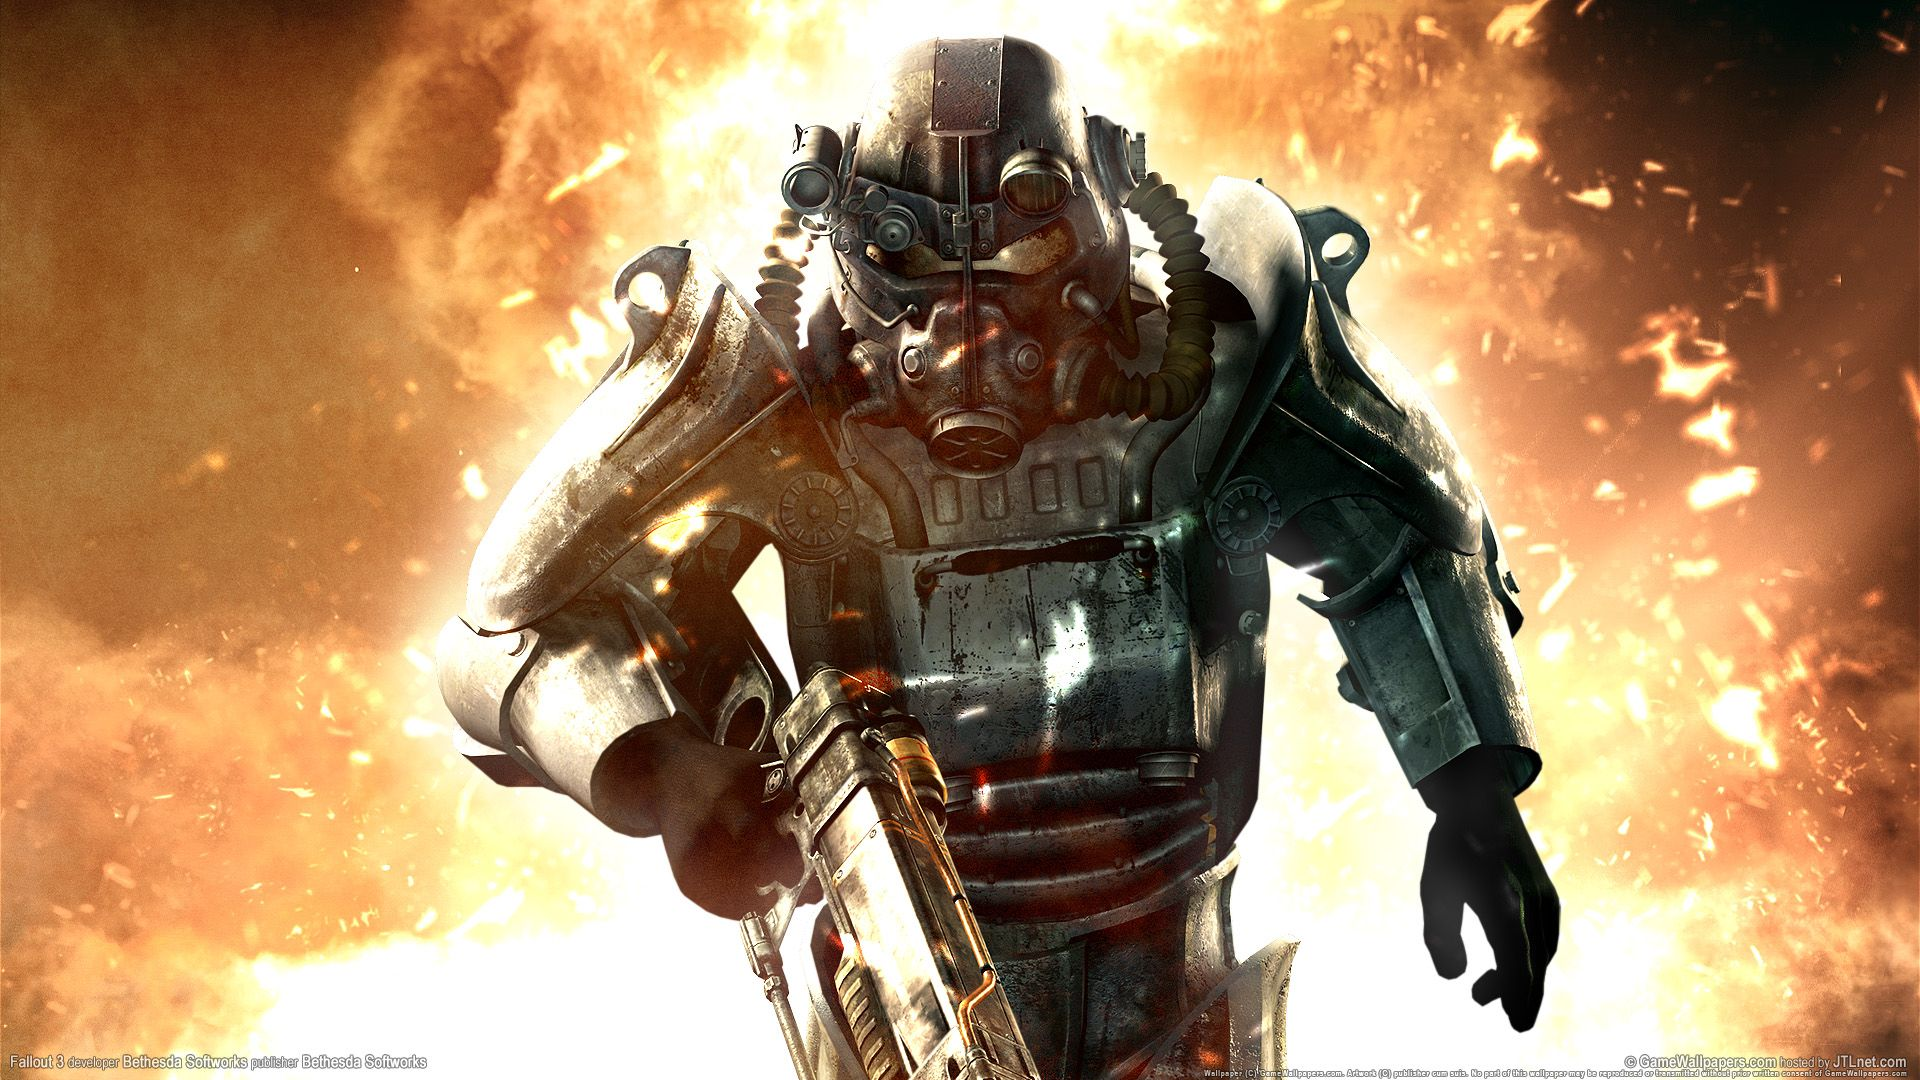 fallout 3 hd game wallpapers 1080p | wants | pinterest | fallout